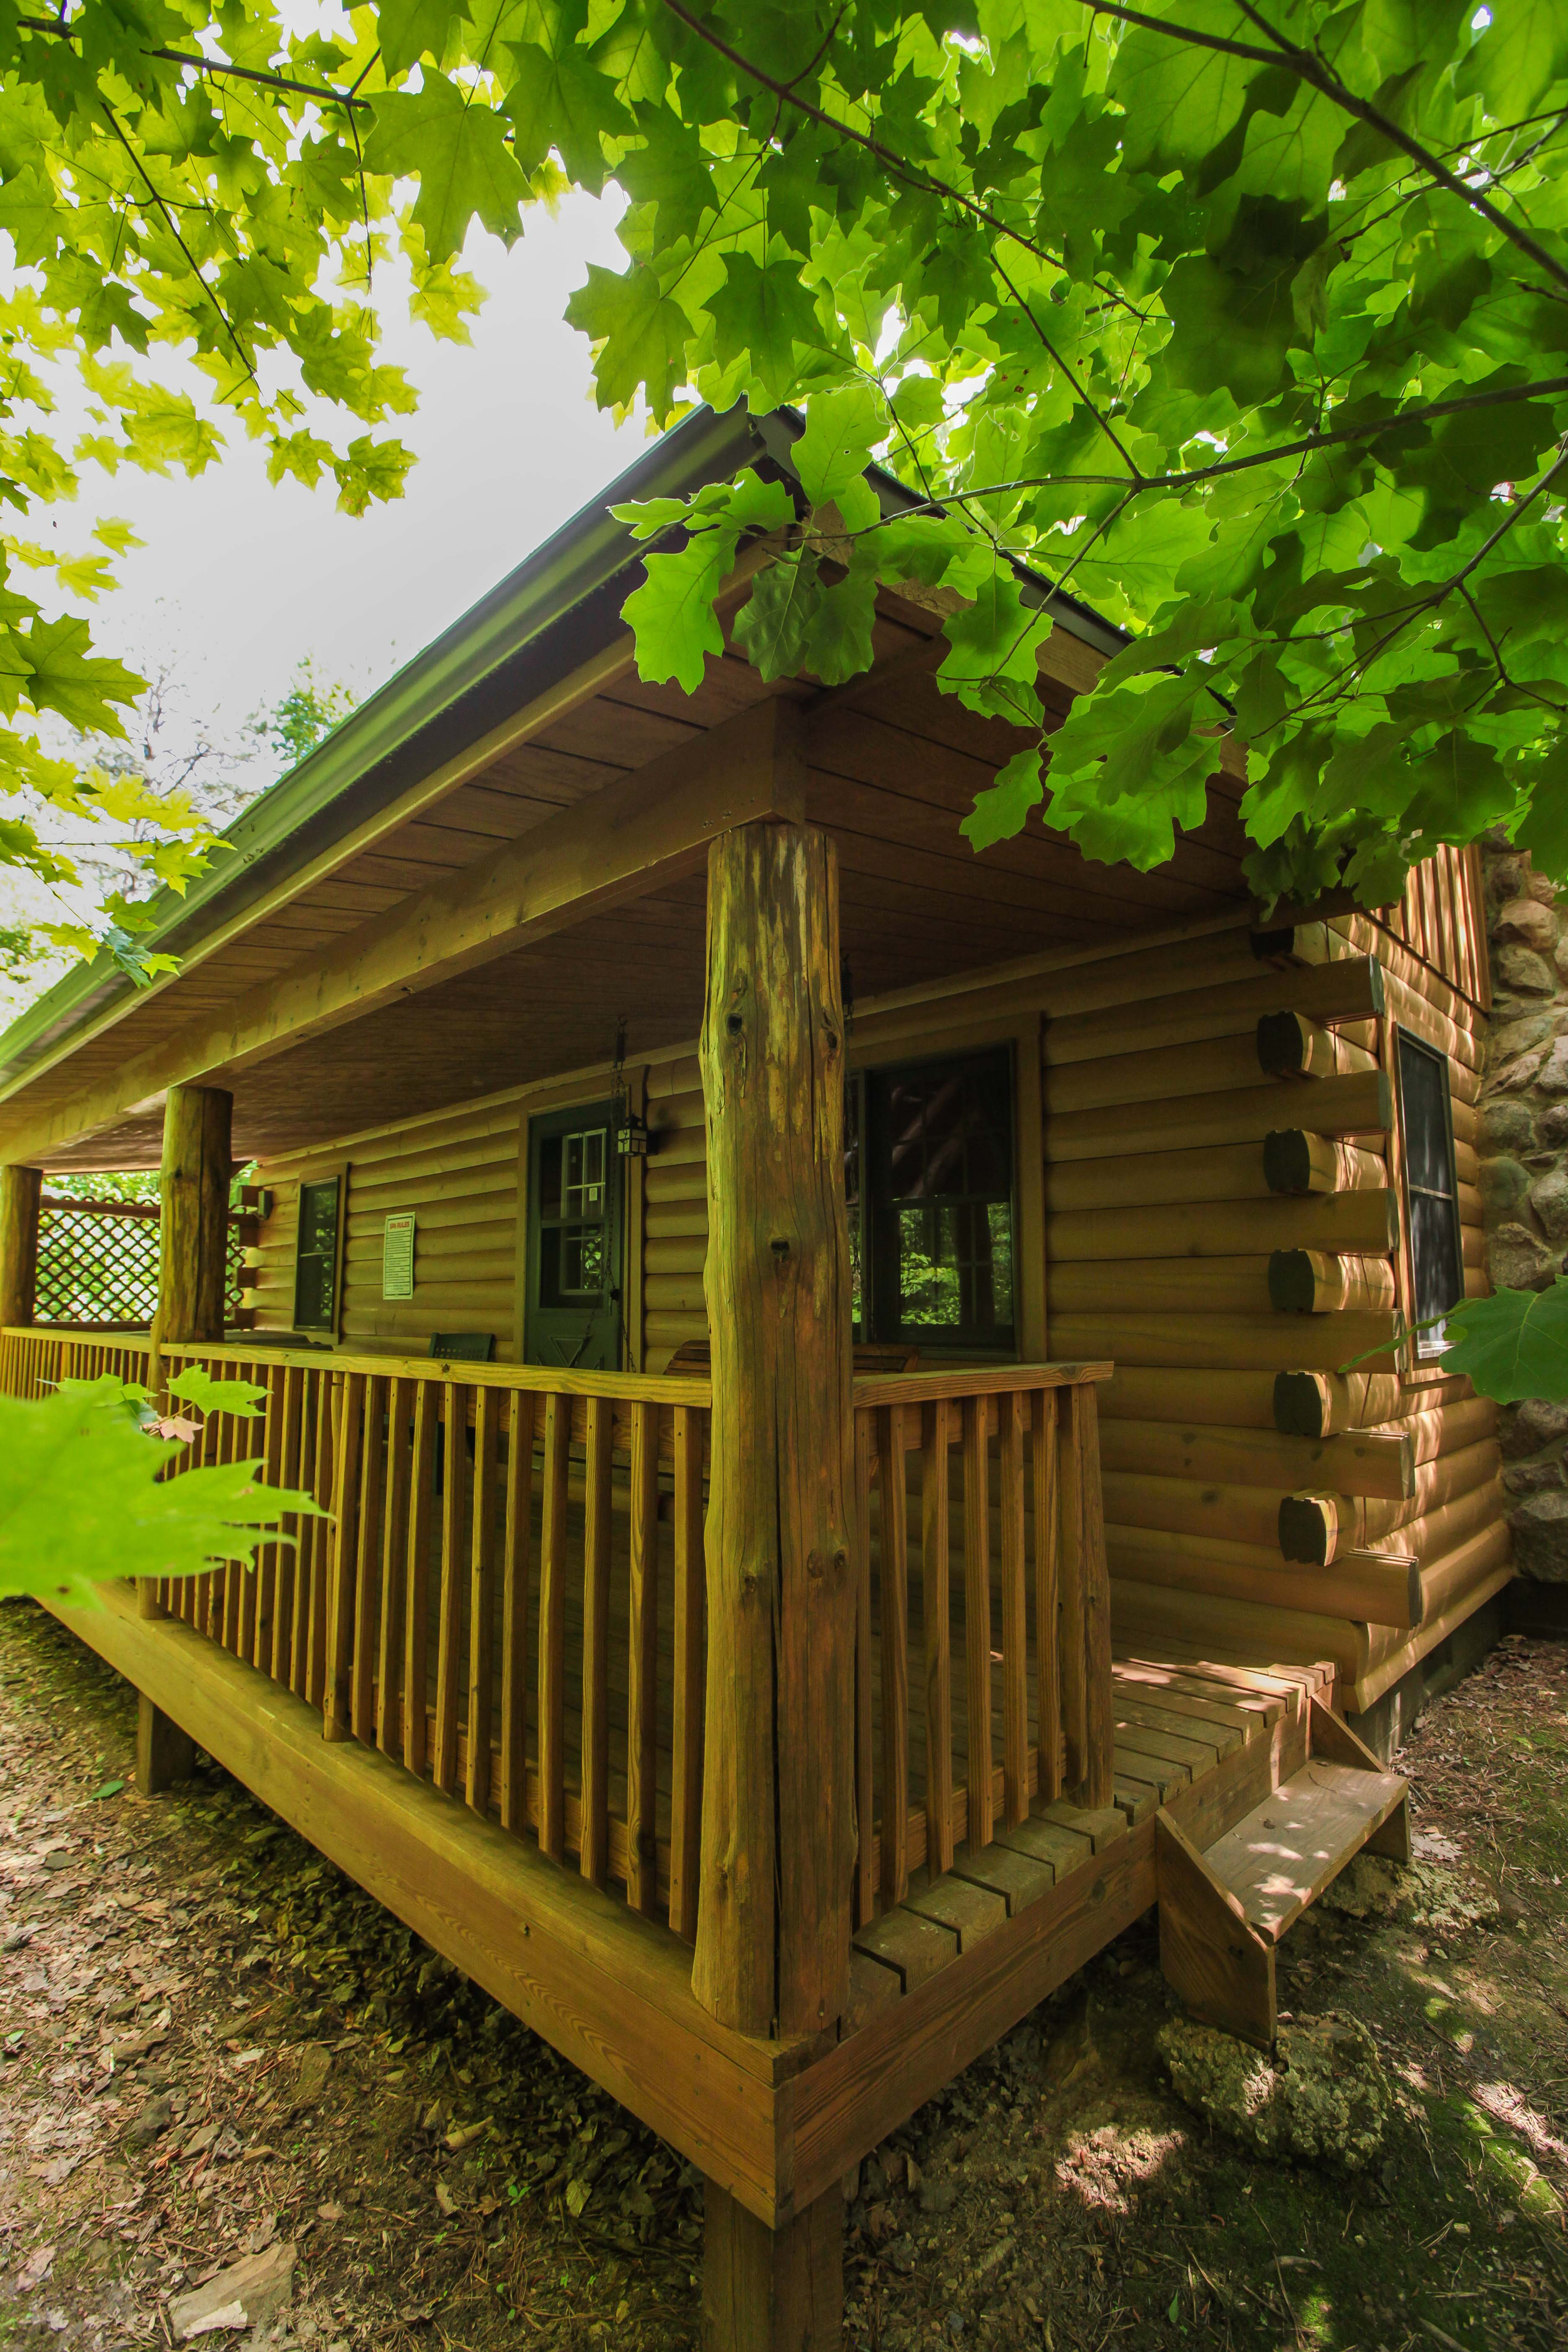 rental hocking hot two with indoor tubs tub cabins in hills ohio specials cheap for sale